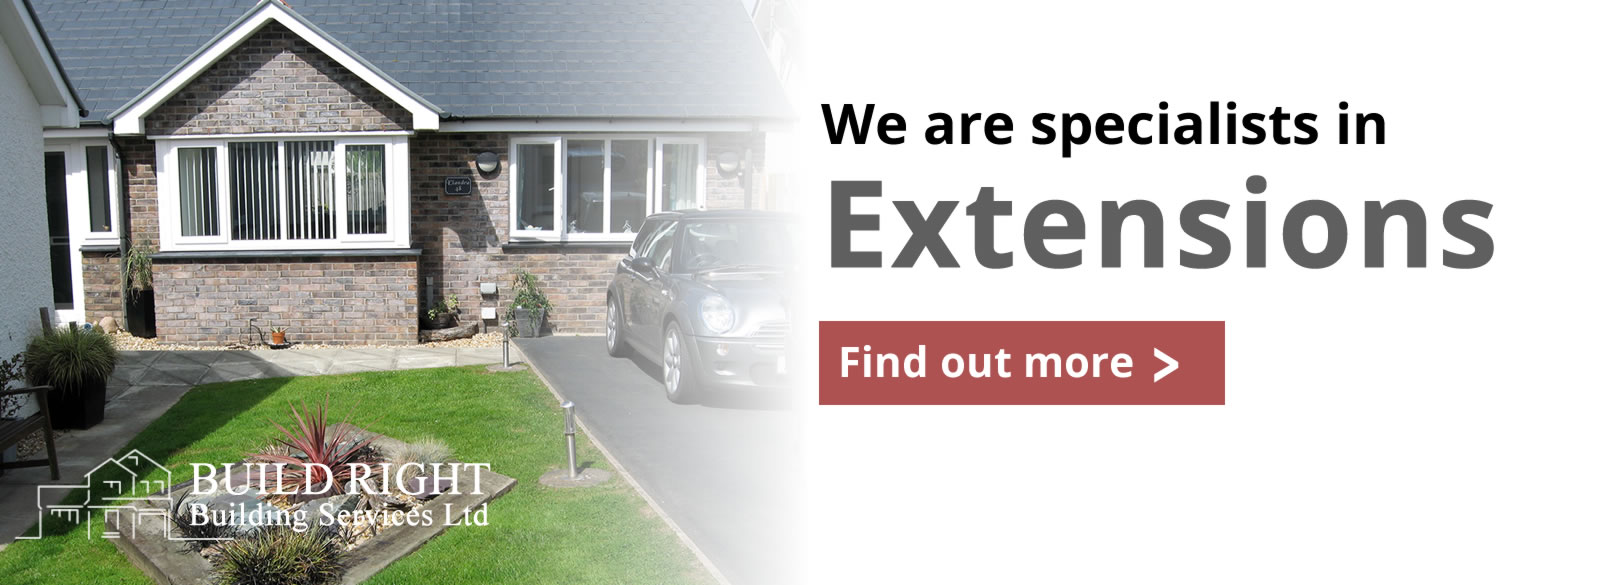 Build Right Building Services Ltd - Extend your home